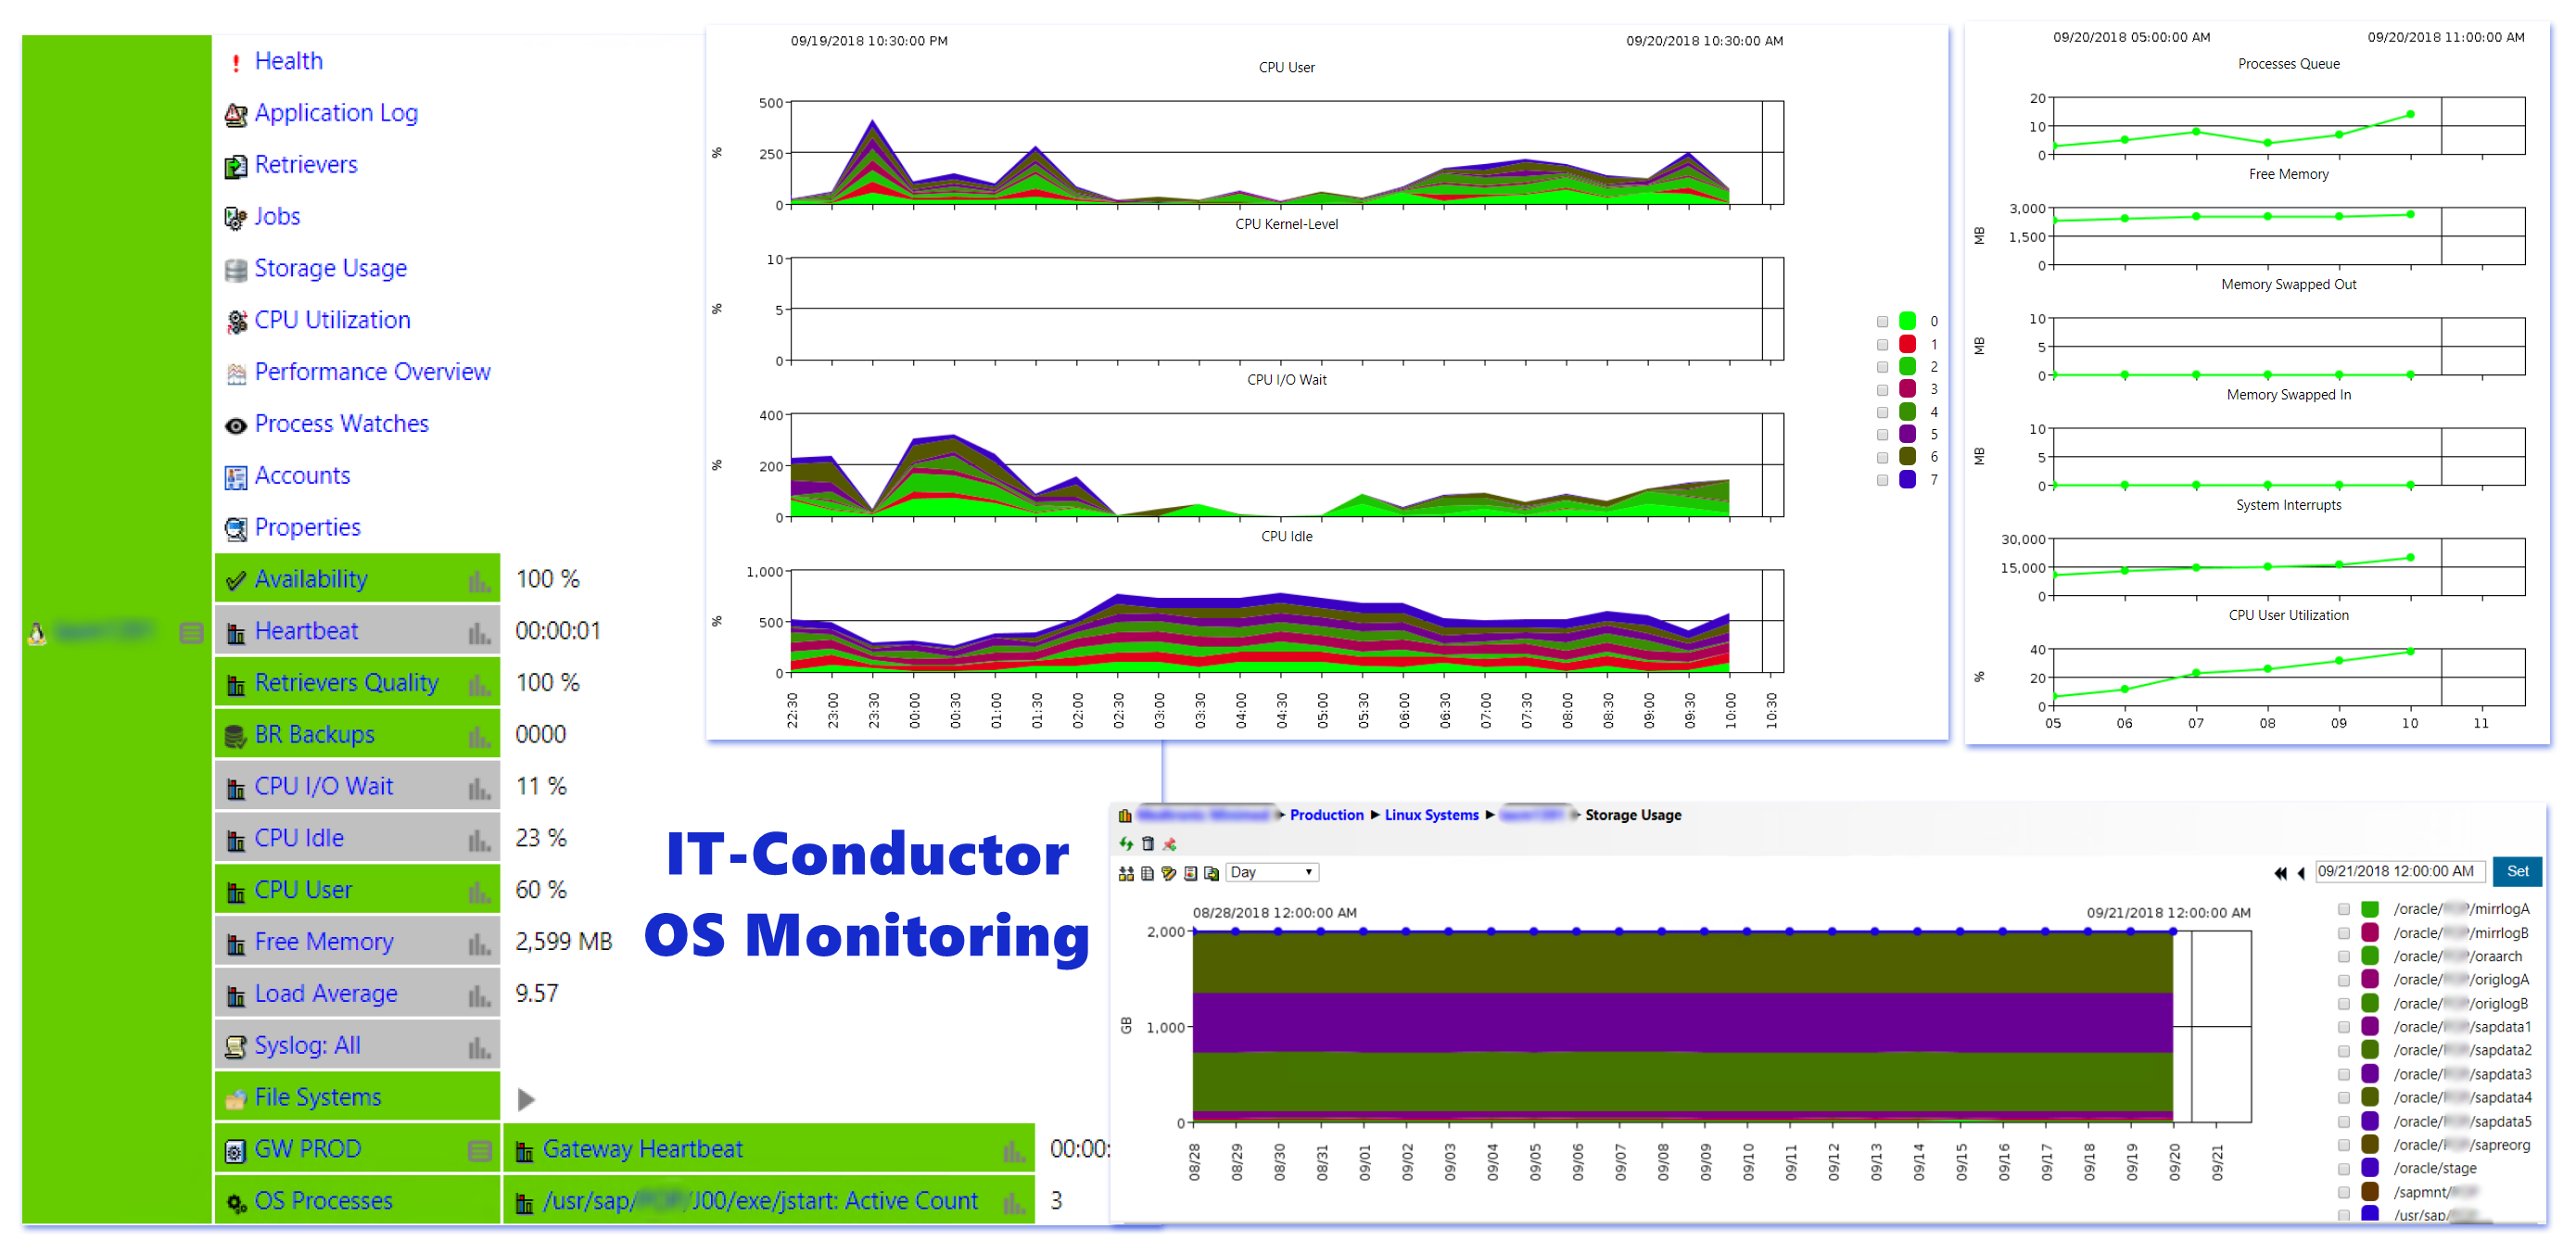 IT-Conductor SAP Basis - OS Monitoring